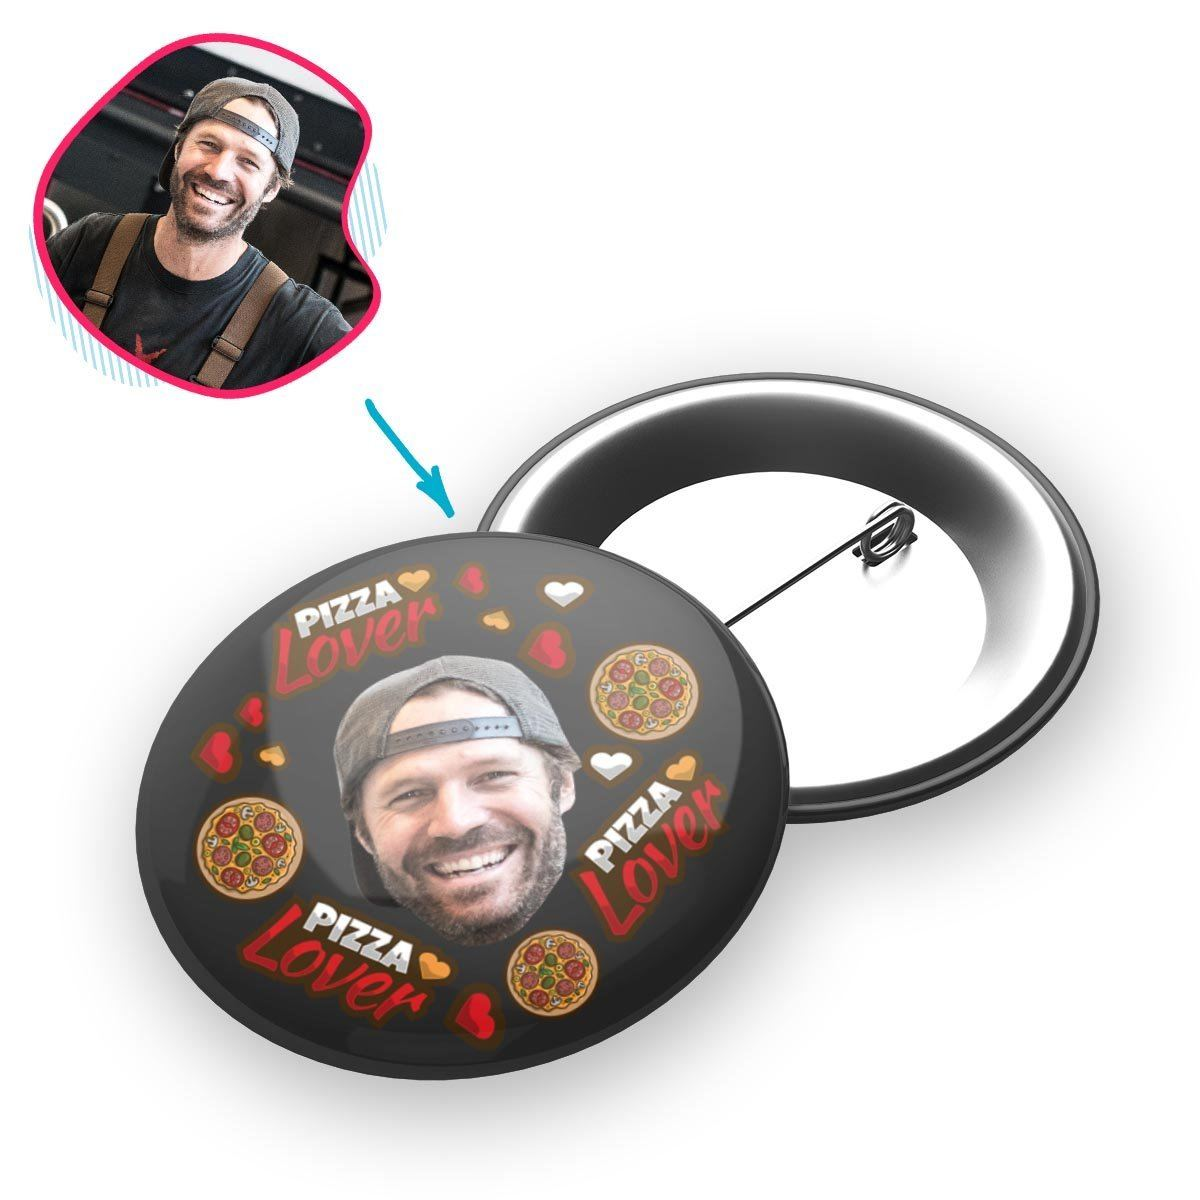 dark Pizza Lover pin personalized with photo of face printed on it